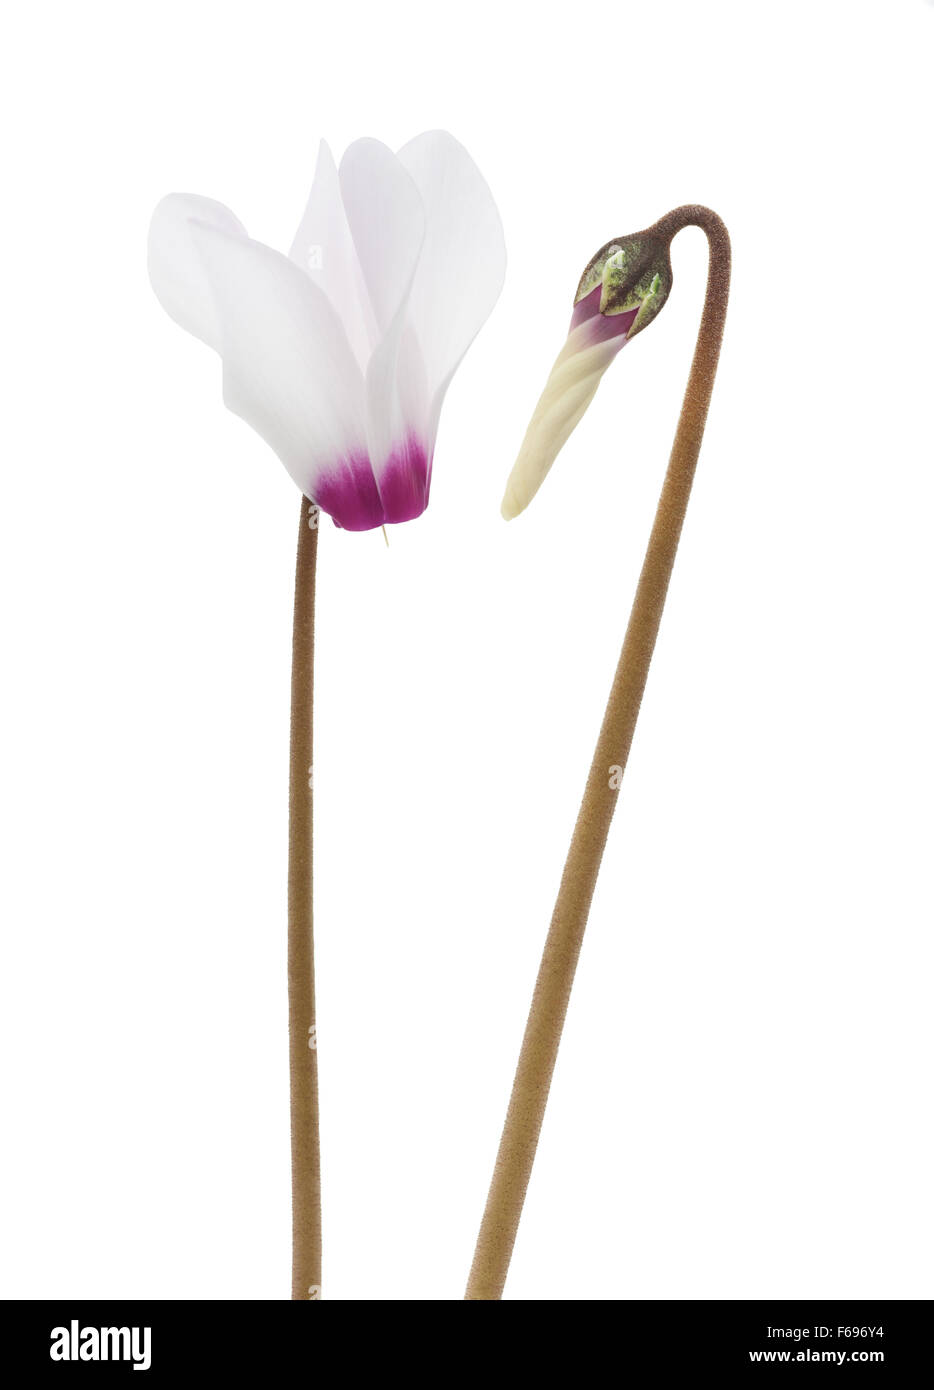 cyclamen flowers isolated on white background - Stock Image